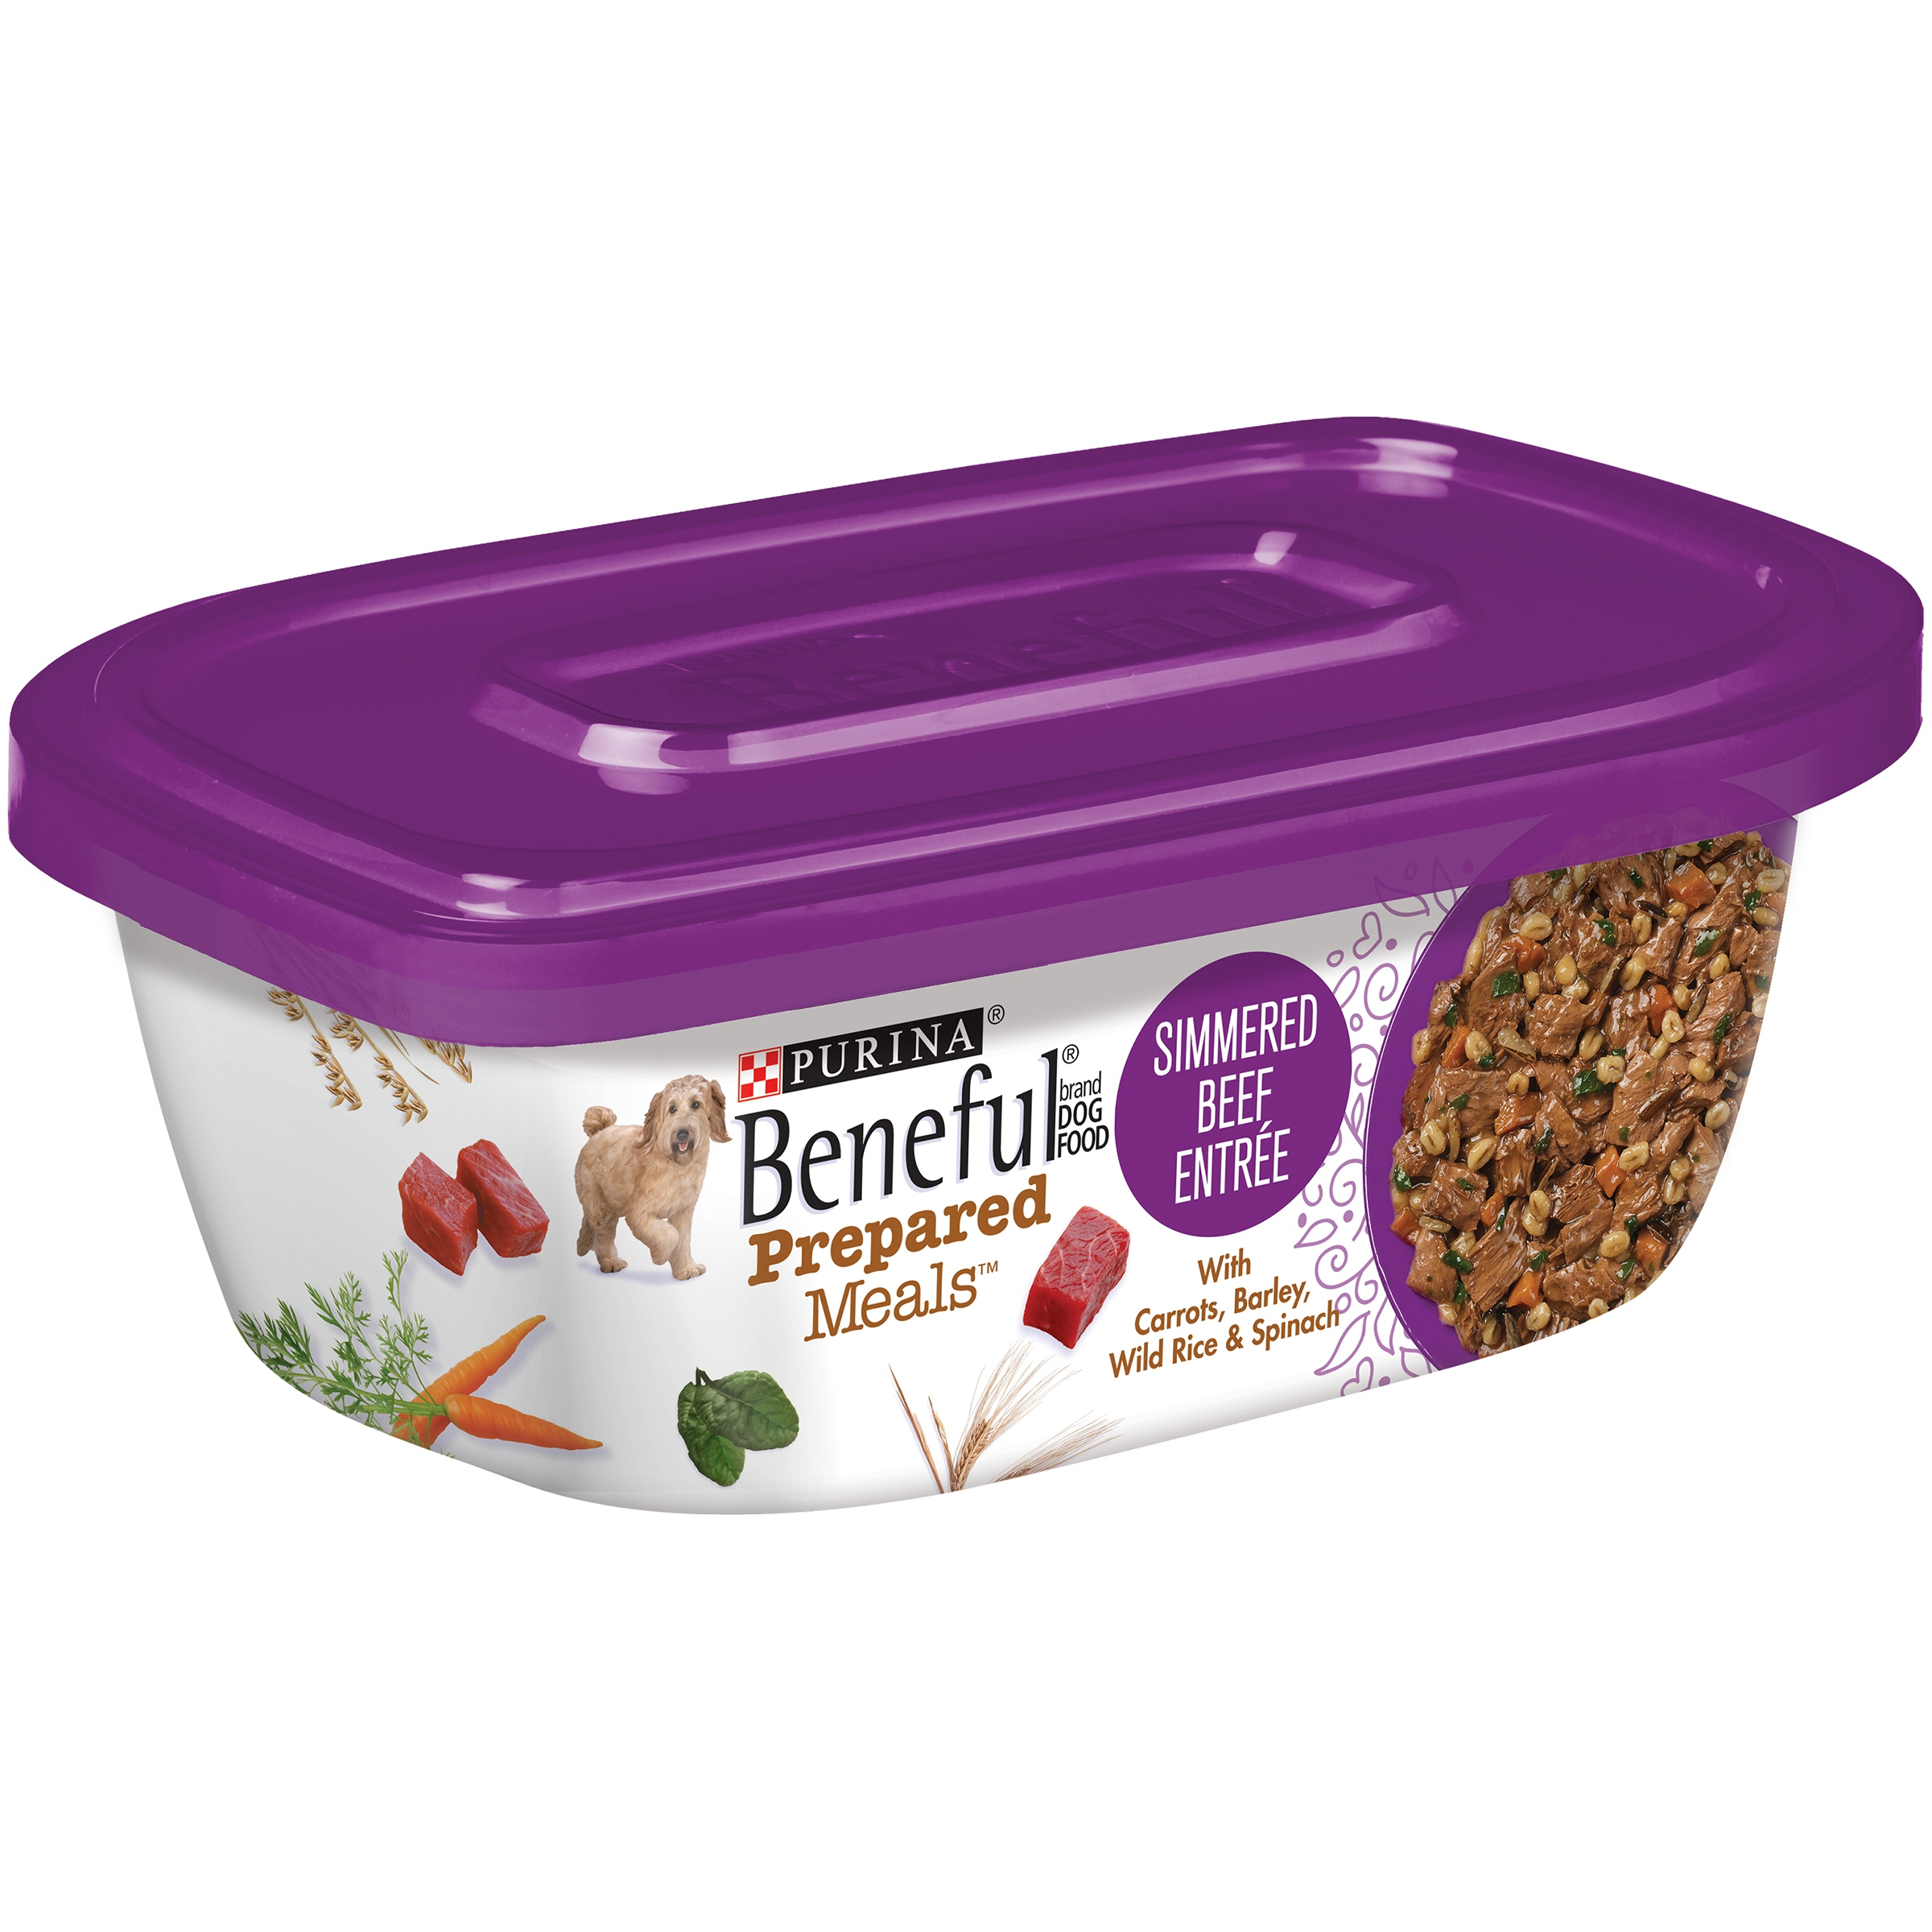 Purina Beneful Prepared Meals Simmered Beef Entree Dog Food 10 oz. Plastic Tub